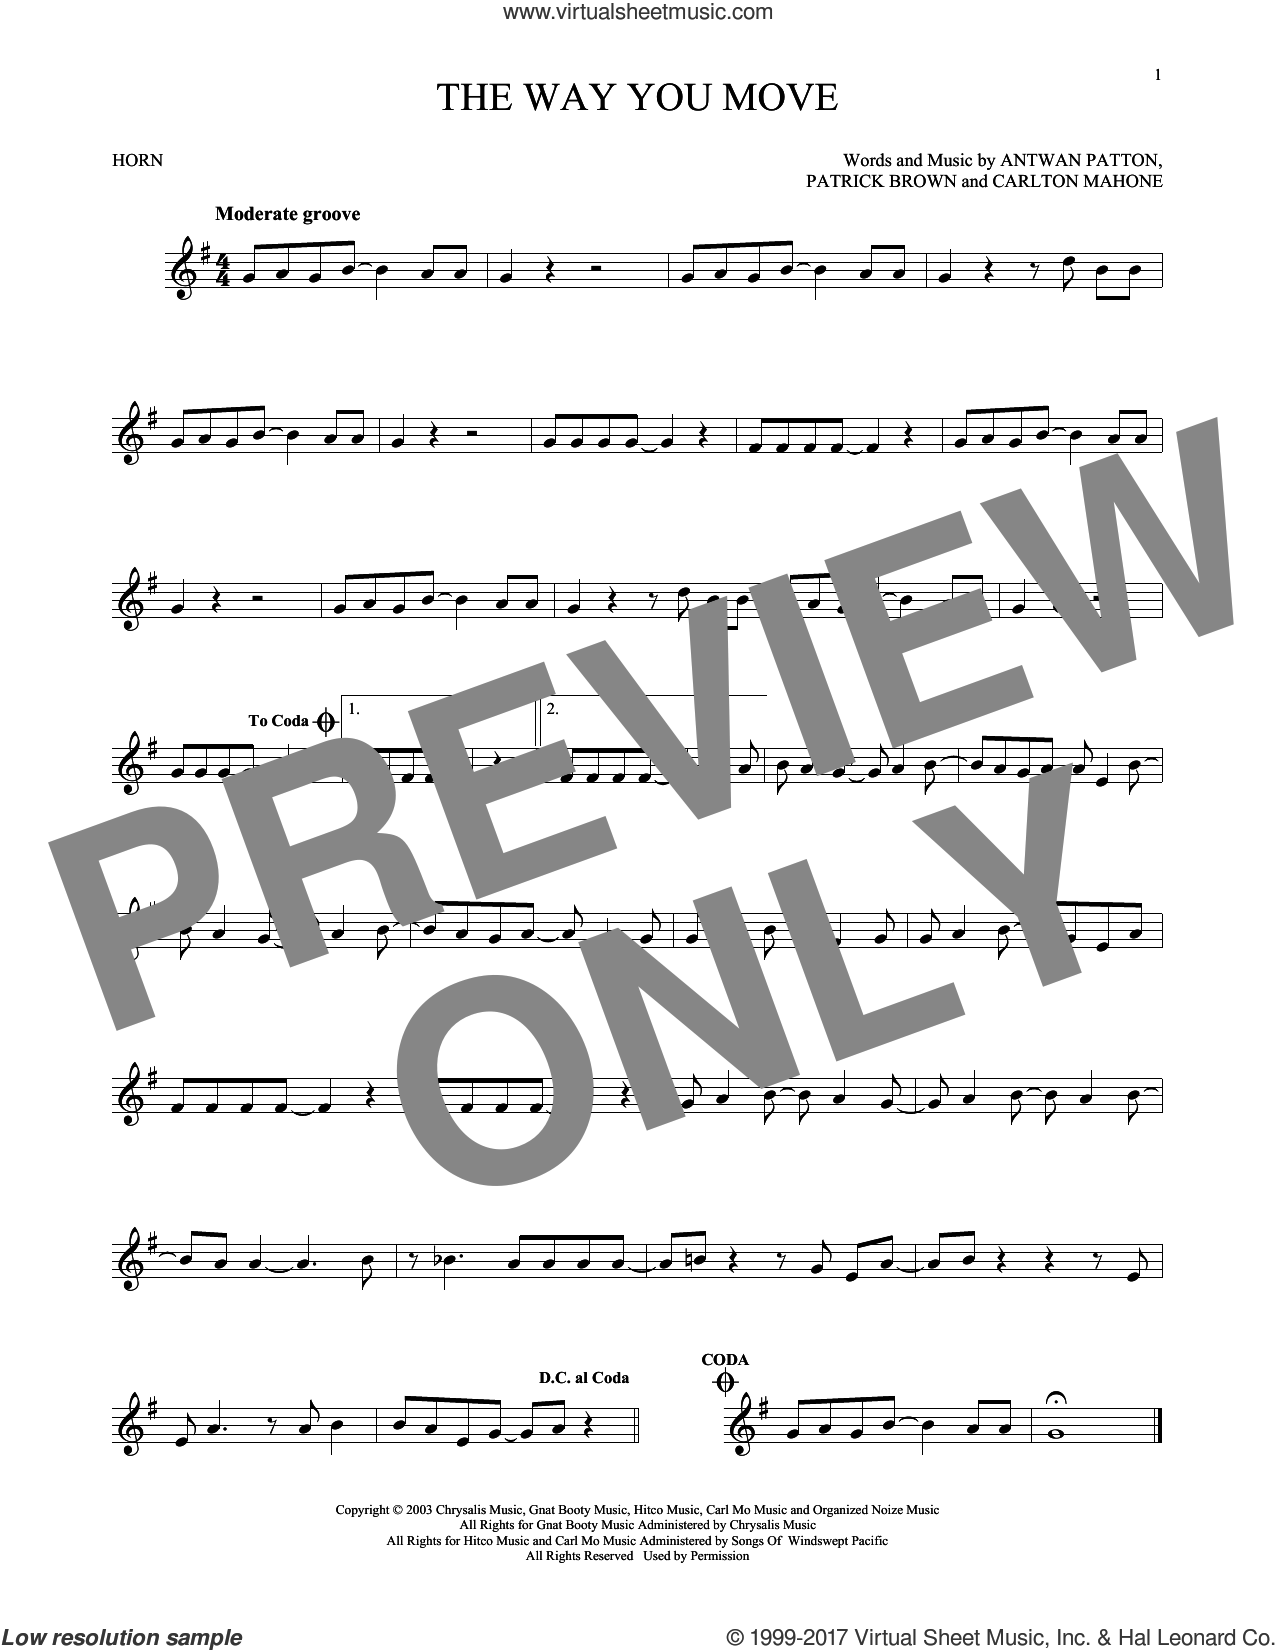 The Way You Move sheet music for horn solo by Outkast featuring Sleepy Brown, Antwon Patton, Cartlon Mahone and Patrick Brown, intermediate